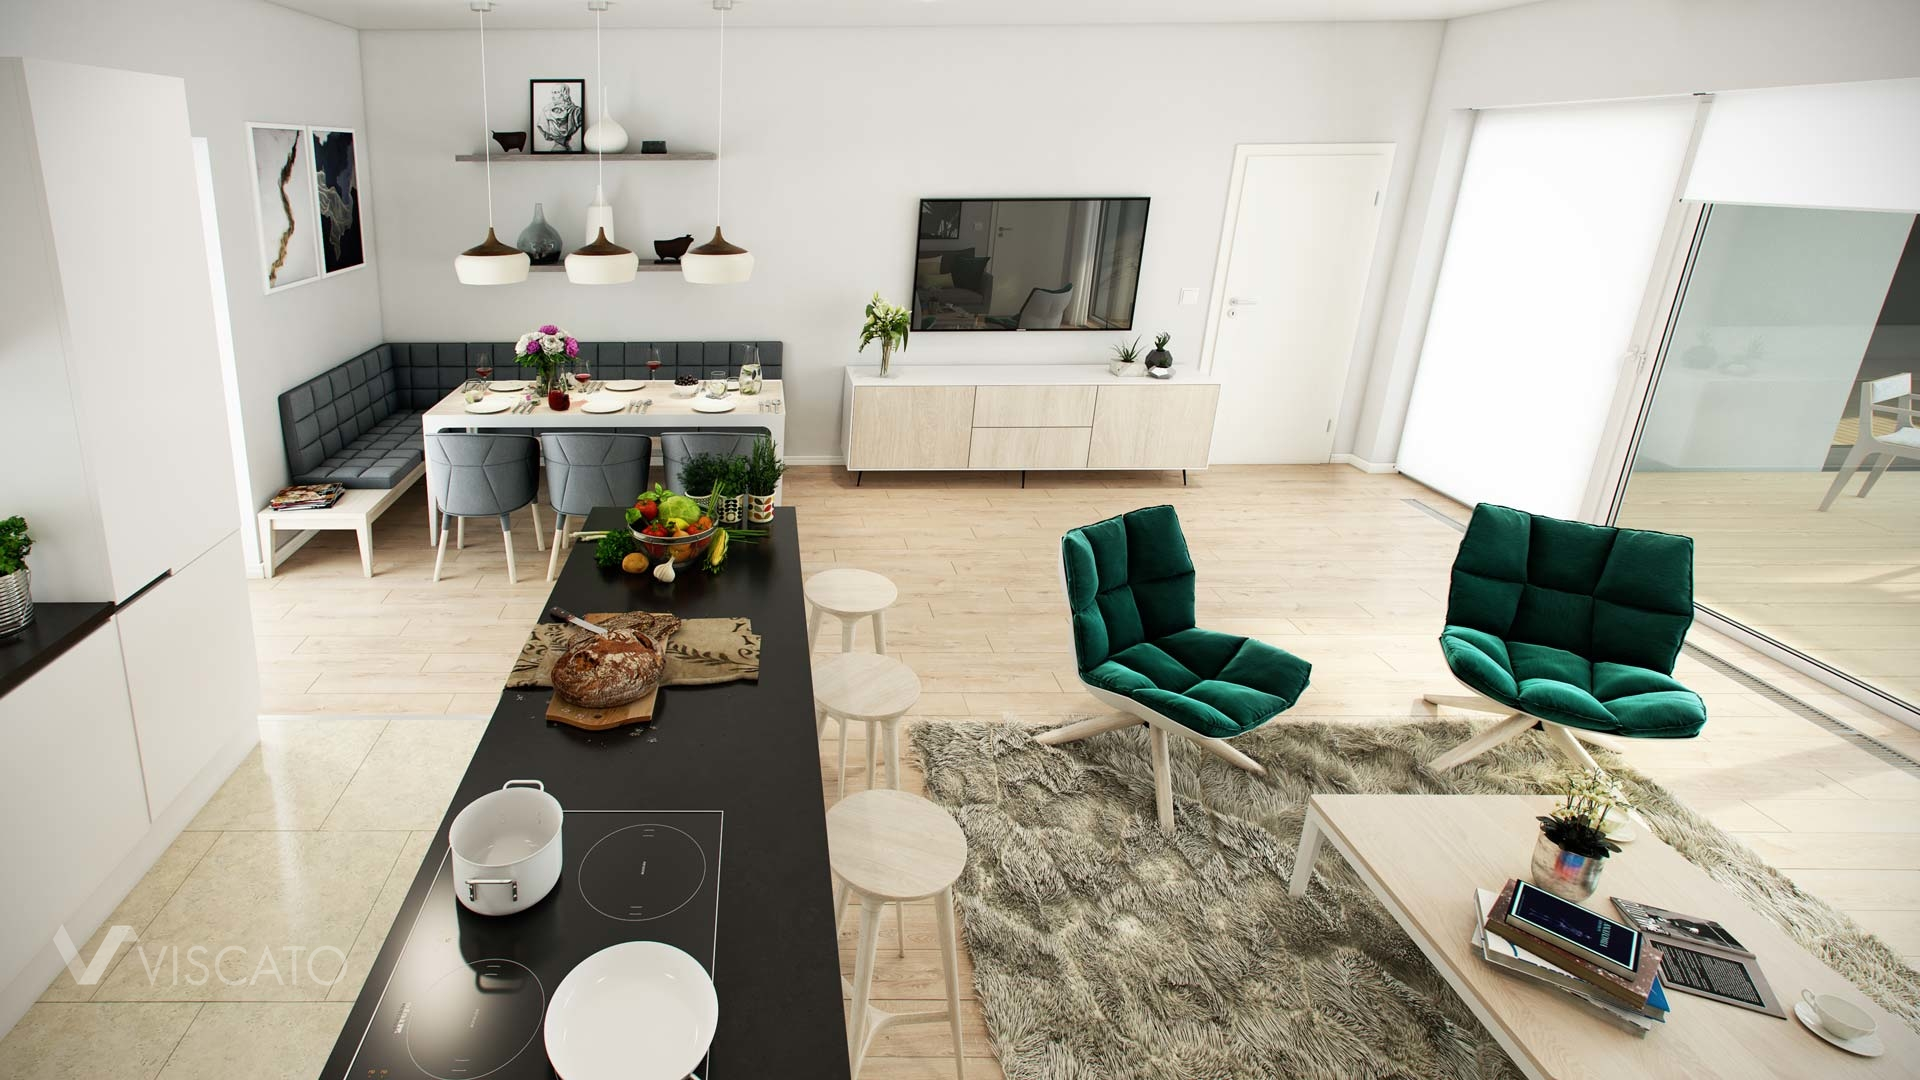 3d visualization of a living room with a kitchenette- Viscato